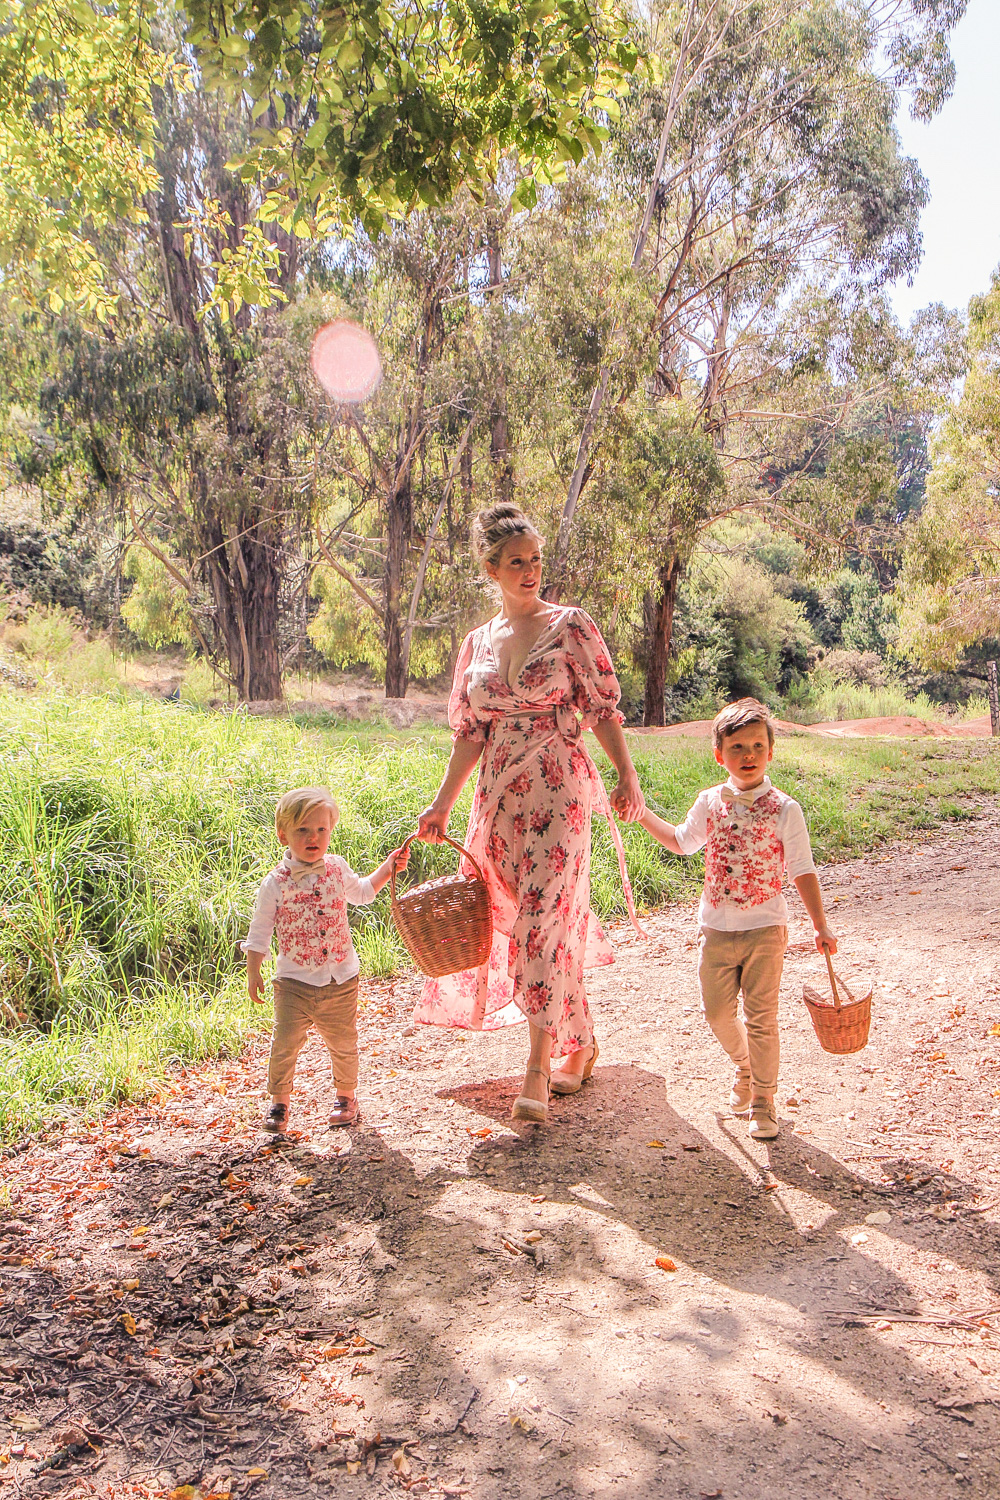 Goldfields Girl walking along forest trail with little boys all holding berry baskets